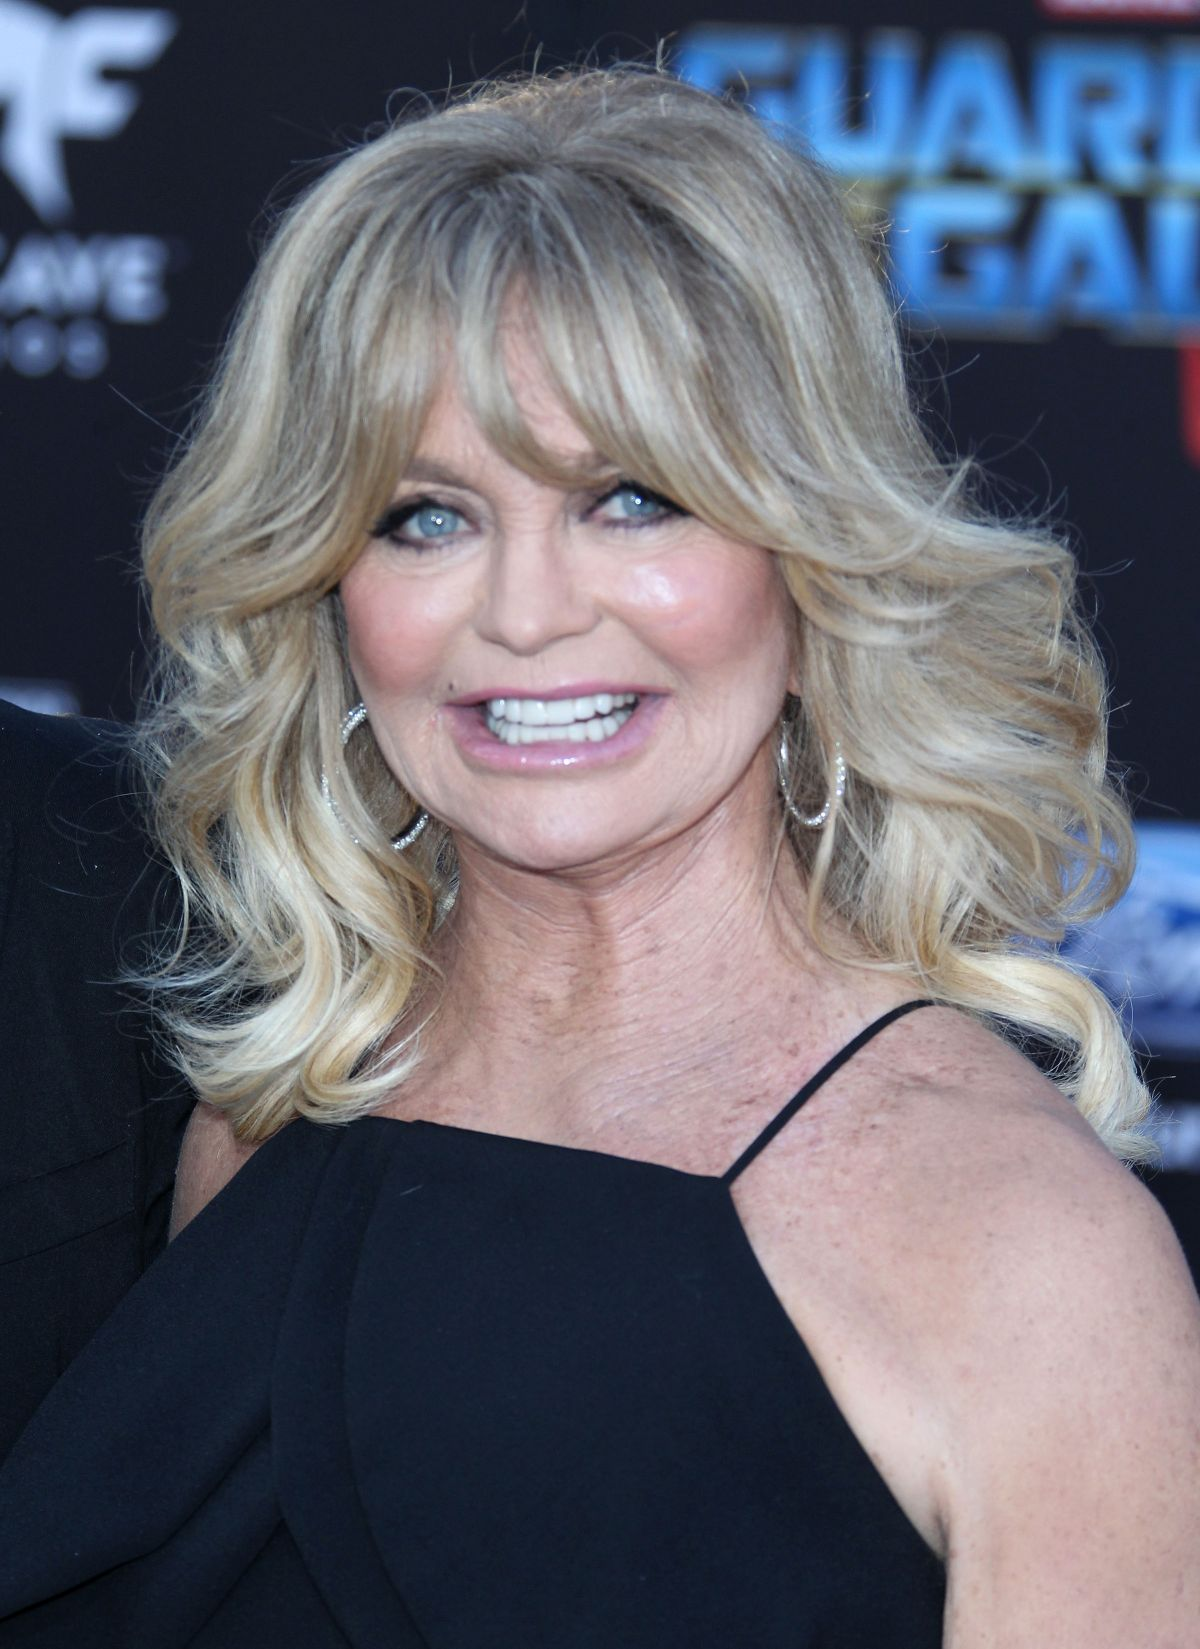 GOLDIE HAWN at Guardians of the Galaxy Vol. 2 Premiere in Hollywood 04/19/2017